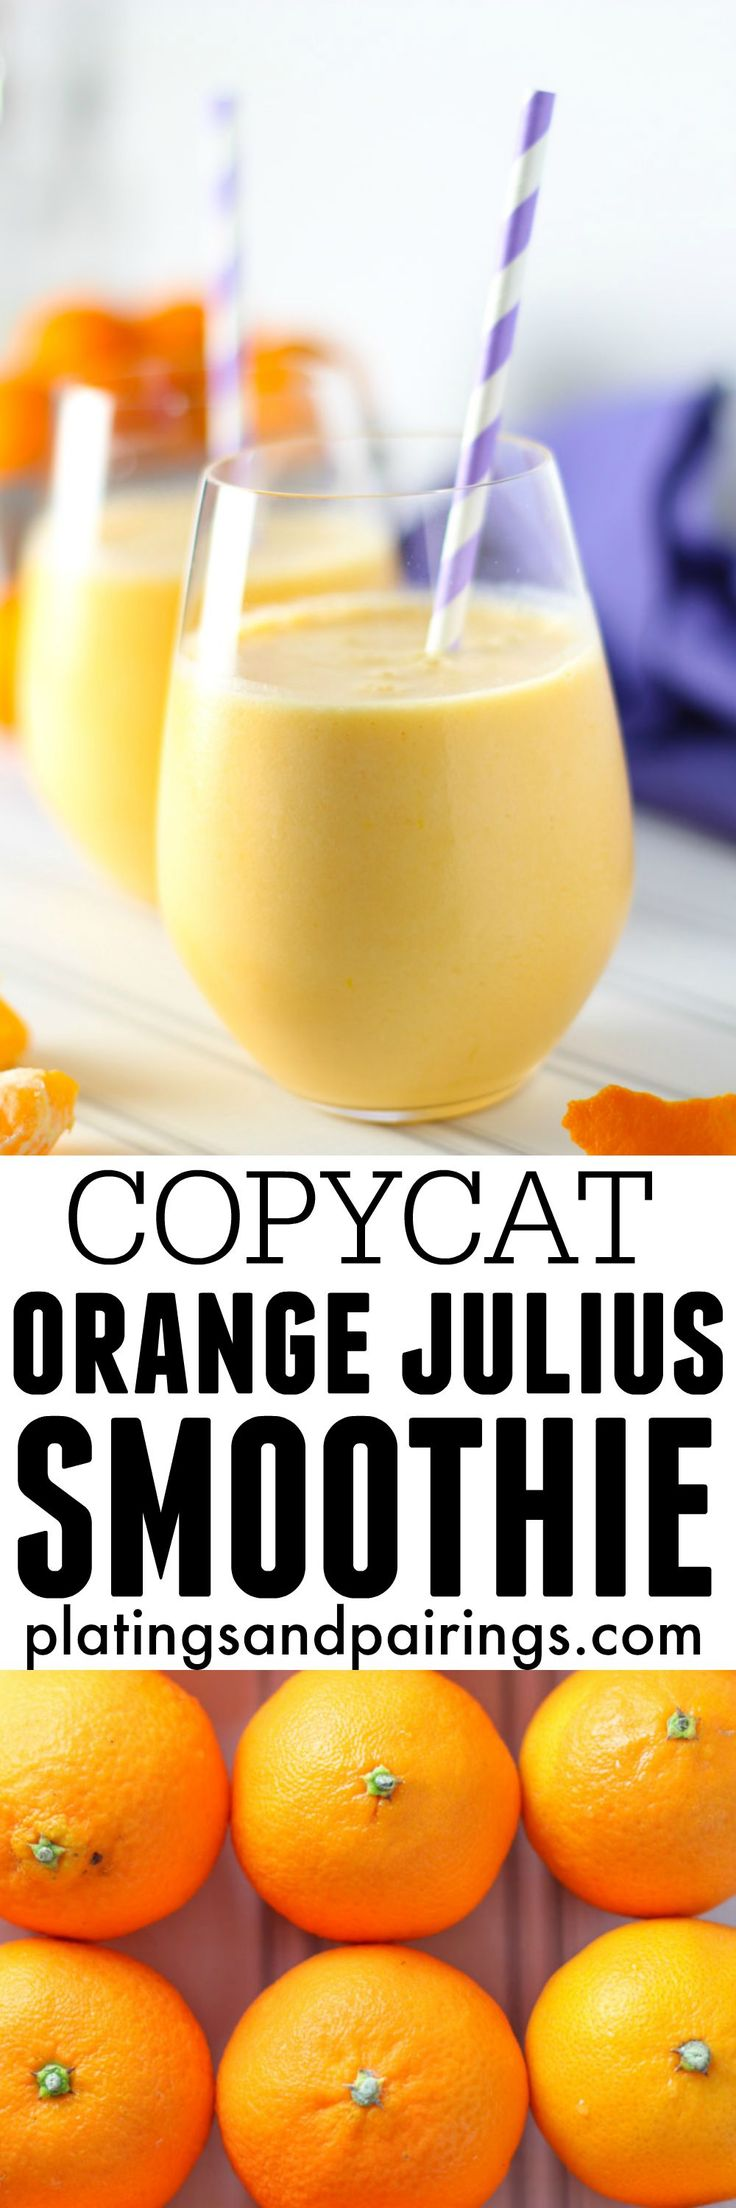 Clementine Smoothie {Orange Julius COPYCAT} | platingsandpairings.com